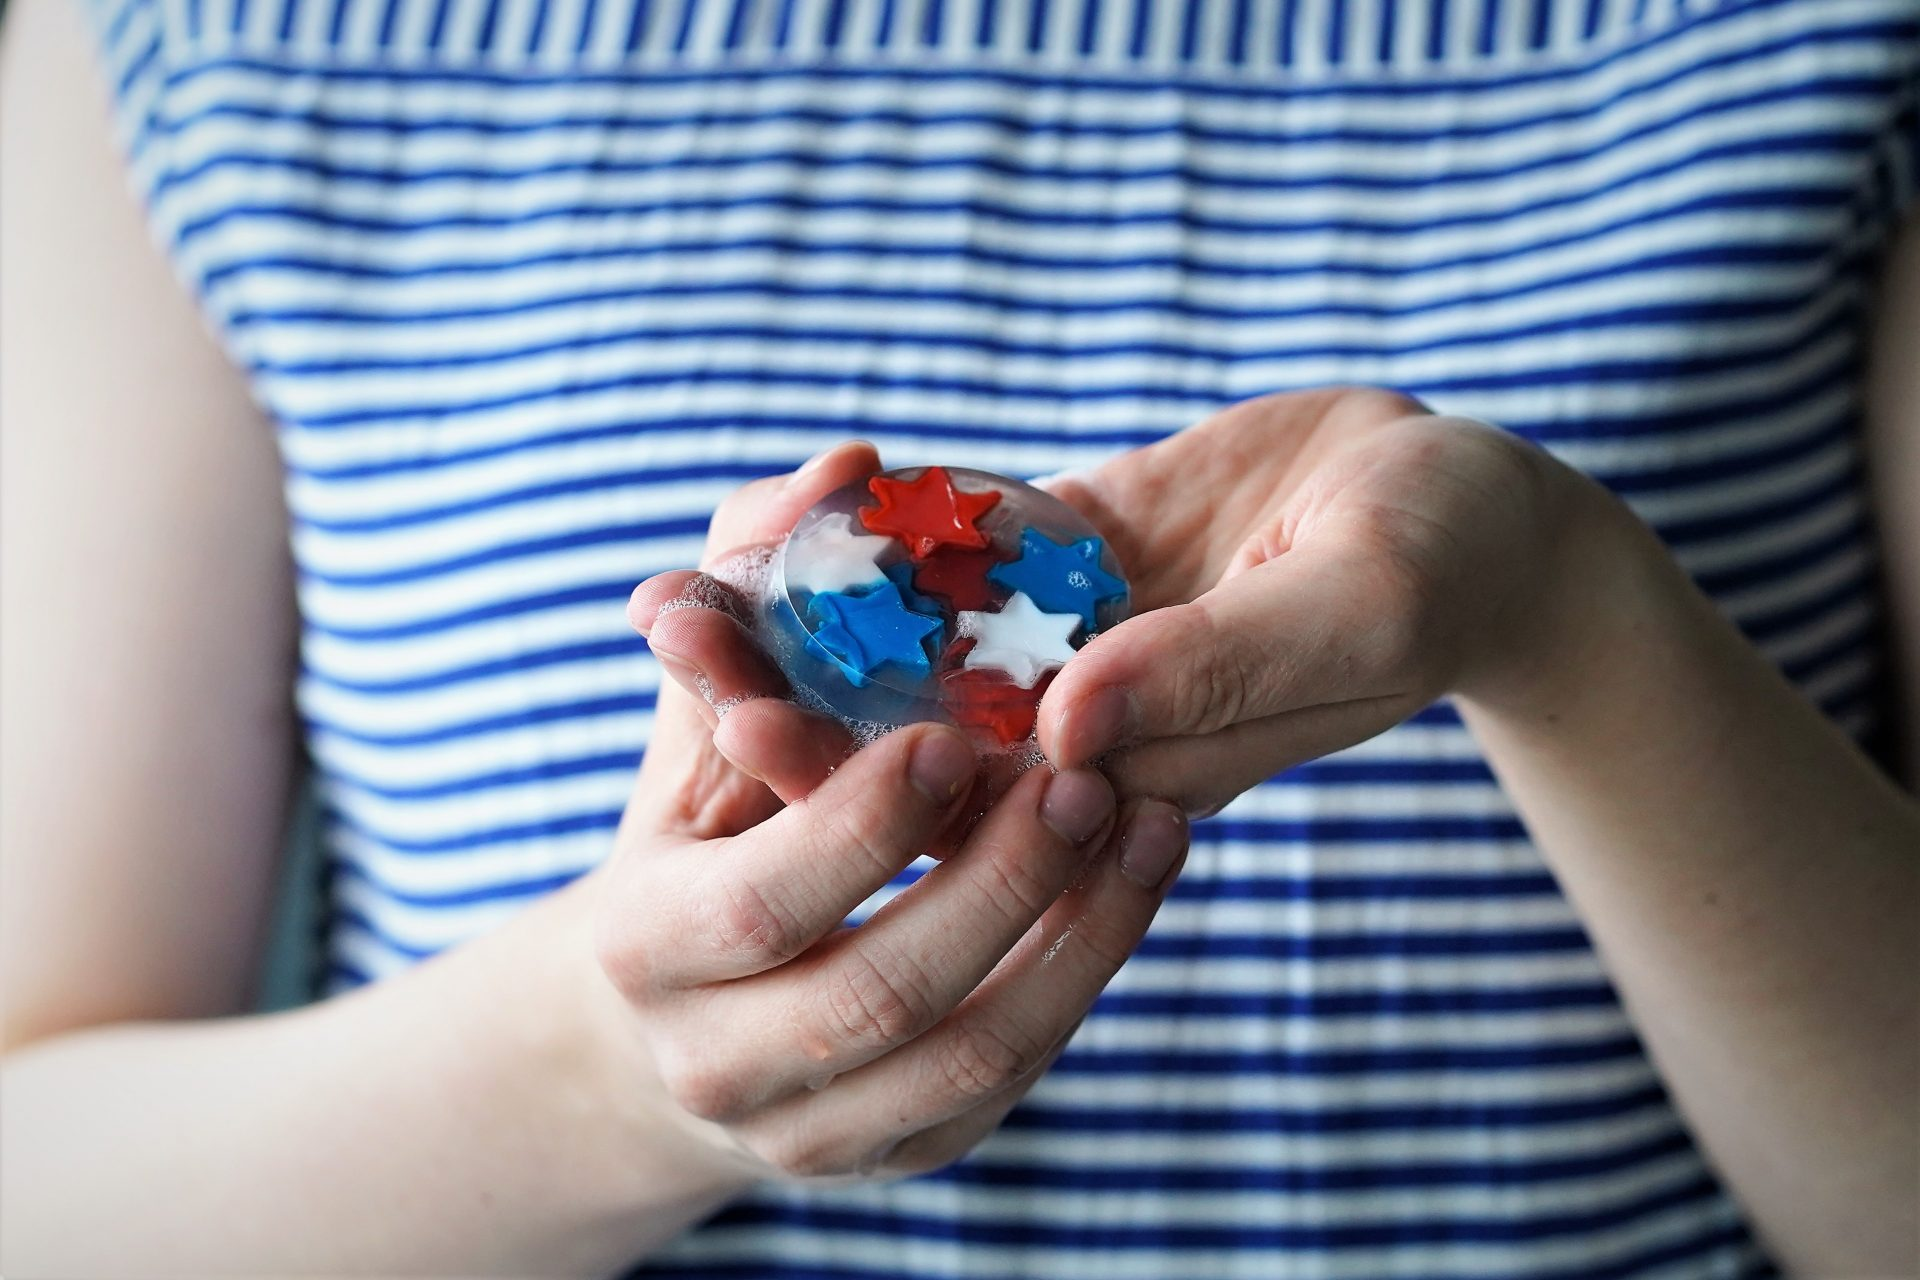 Create fireworks in your bathroom! With this easy 4th of July craft tutorial you make your own melt and pour soaps with red white and blue stars. The step by step DIY is so easy that you can make it as a patriotic kids activity or even just for adults! These make great party favors or a subtle surprise for your fourth of July guests in your bathroom! By The Makeup Dummy #kidscrafts #kidsactivities #fourthofjulycraft #4thof july